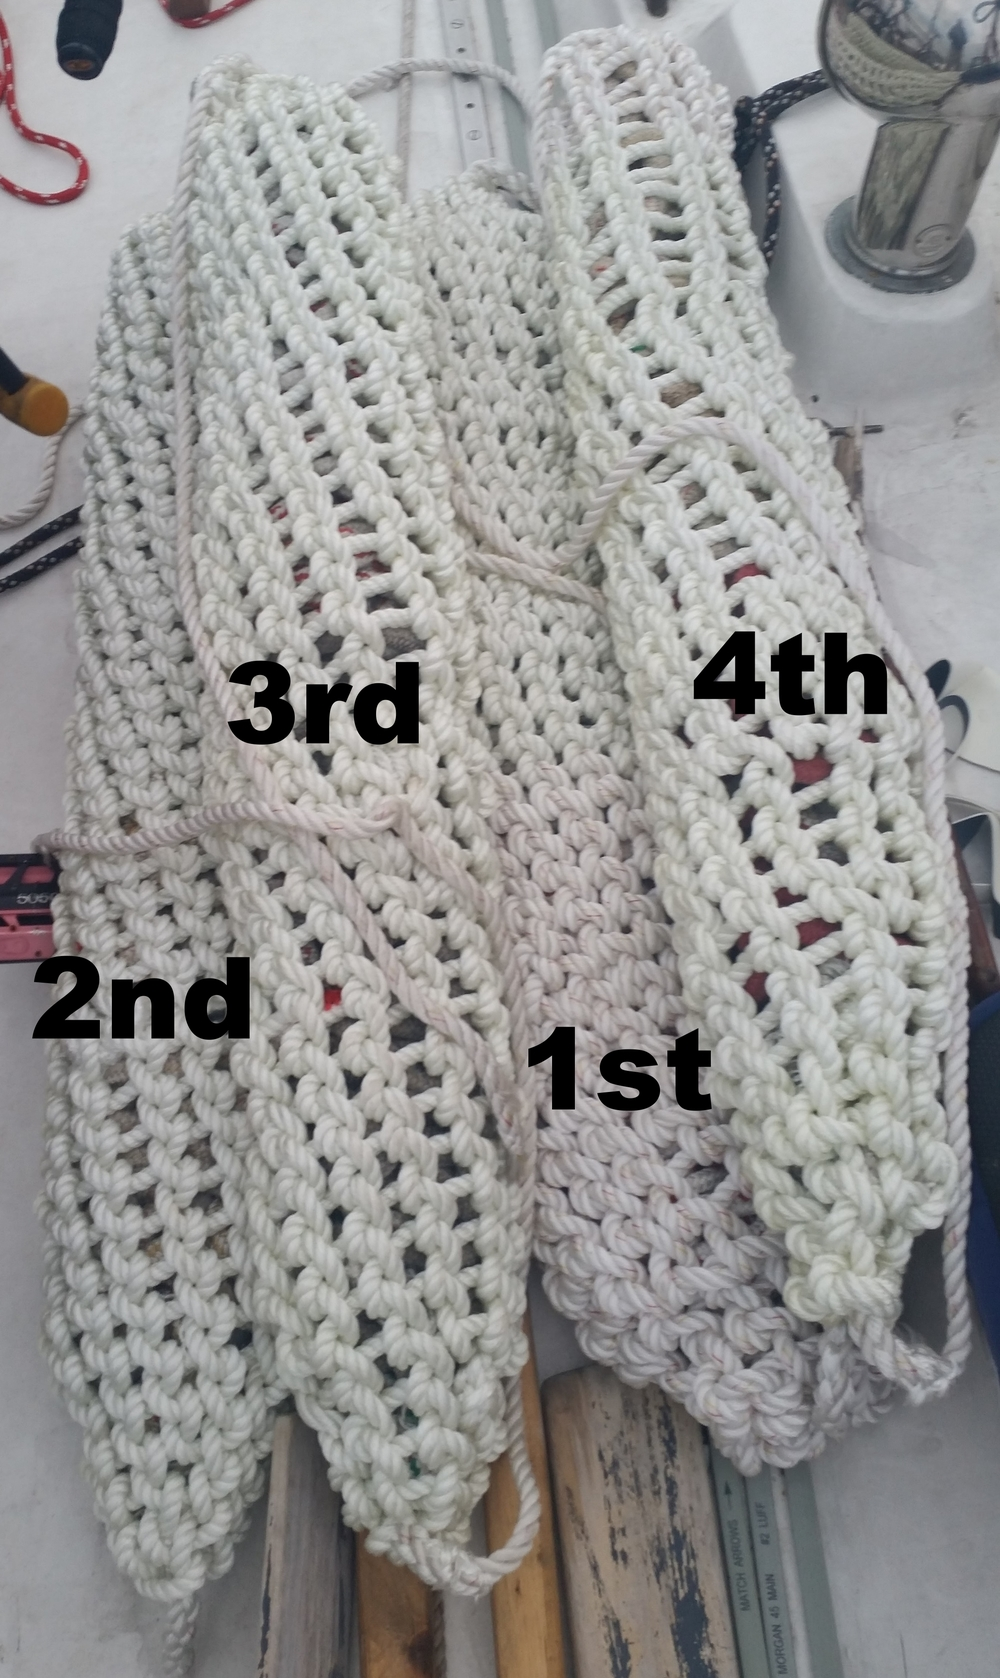 1st: I had plenty of rope! 2nd: Still had plenty of rope, but made the gaps a bit larger to consume less rope. Greatly improved the tapers at the ends. 3rd: Had plenty of rope. Perfected the tapers on ends of the fenders. 4th: Running out of rope, so I made the gaps much larger to stretch out the available rope.